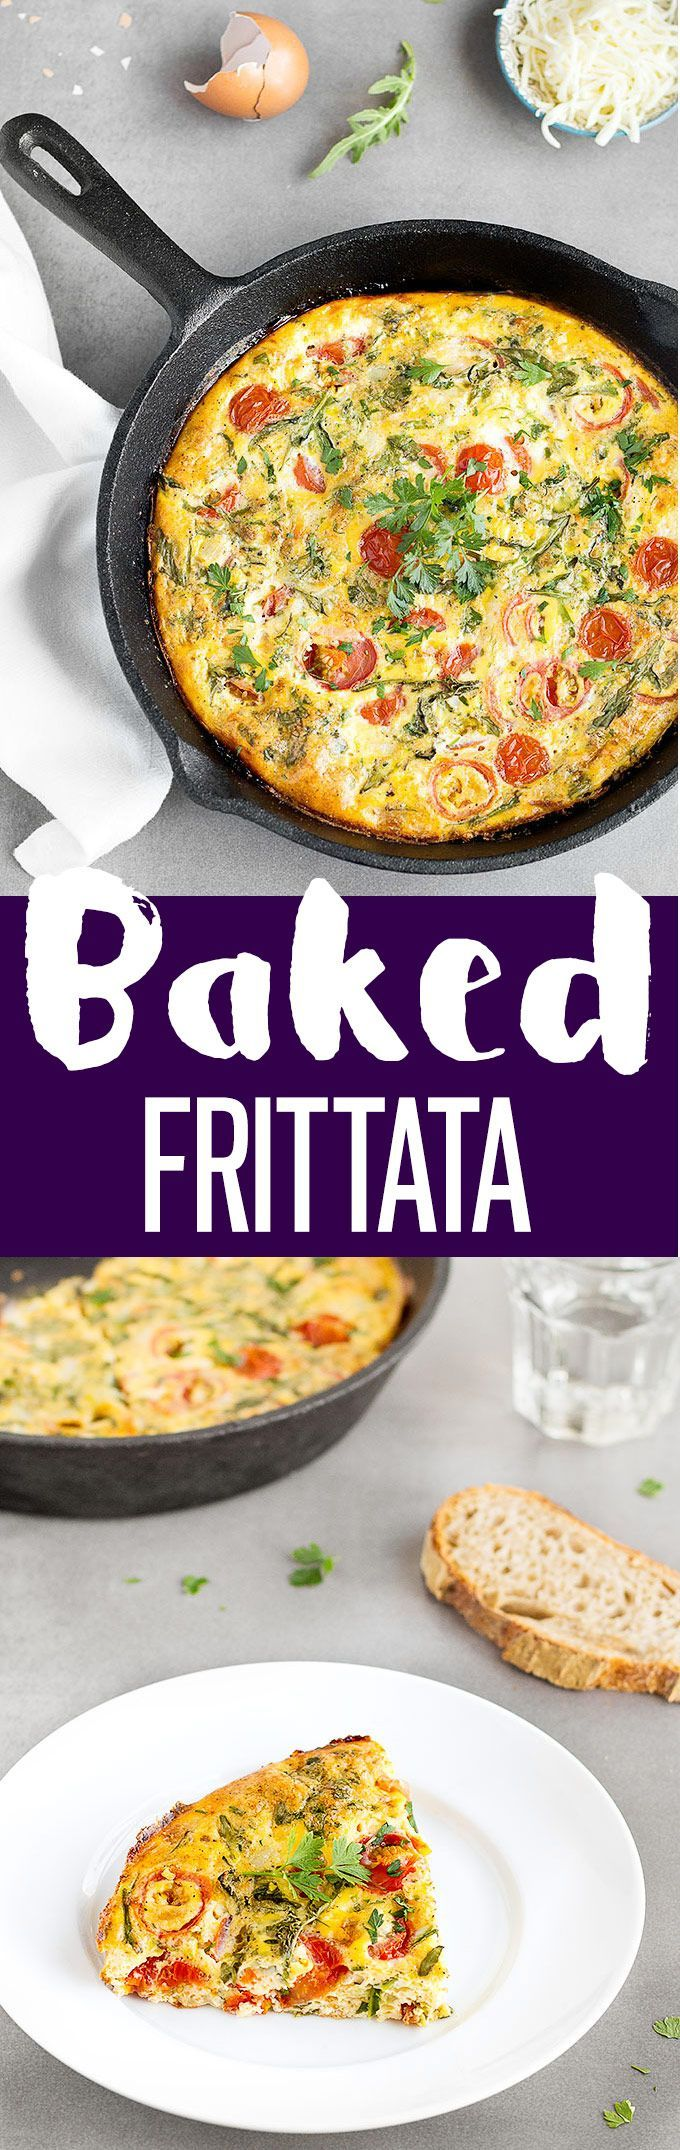 1000+ ideas about Baked Frittata on Pinterest | Frittata Recipes ...